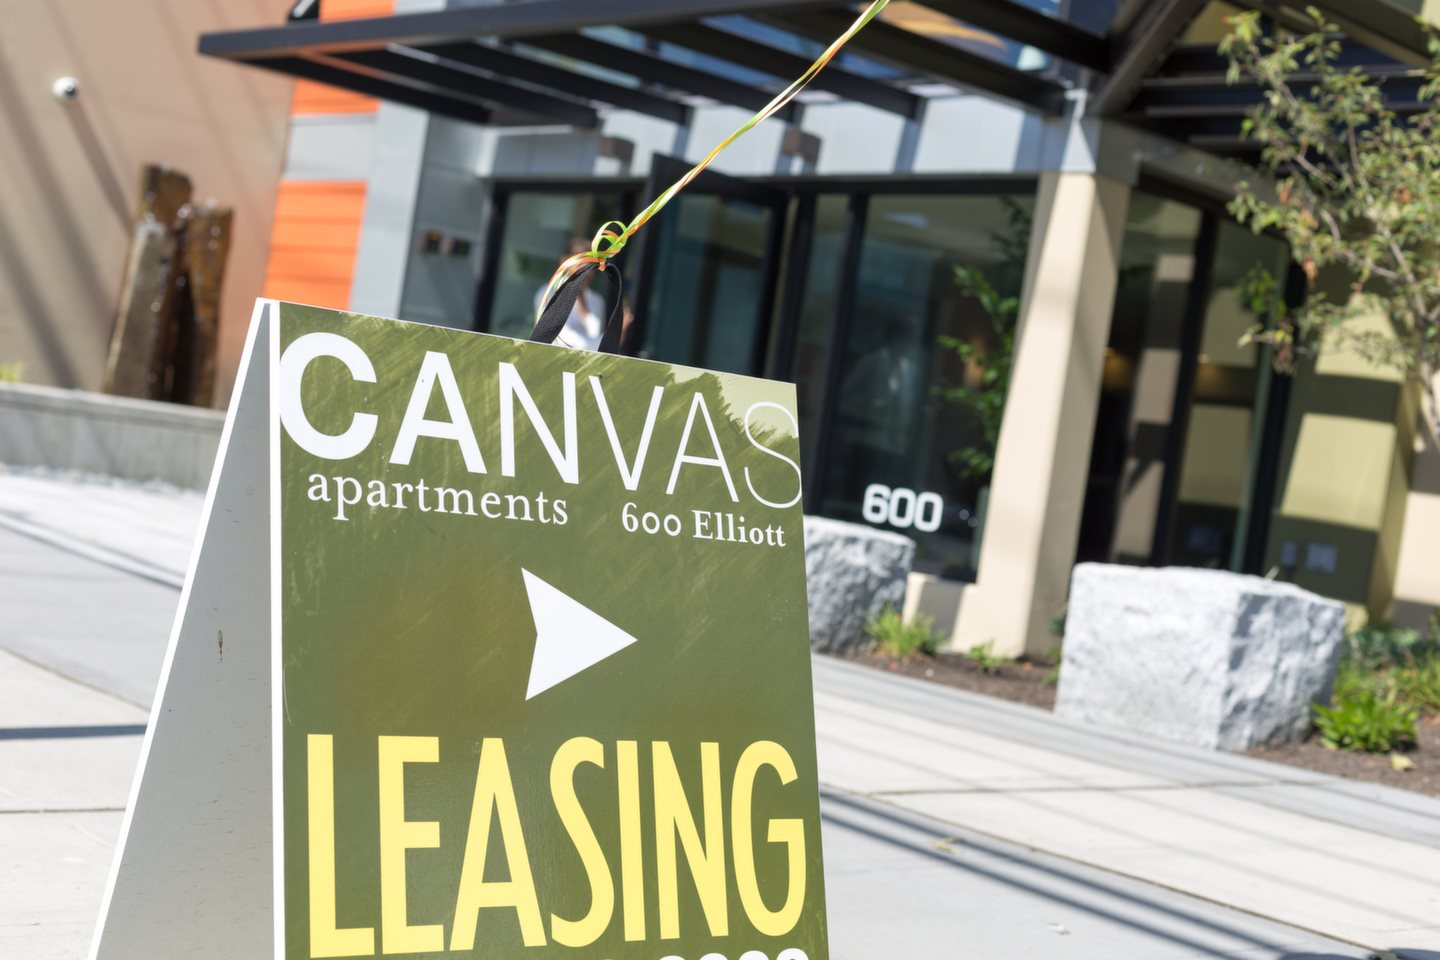 Easy Leasing at Canvas Apartments, Seattle, WA,98119